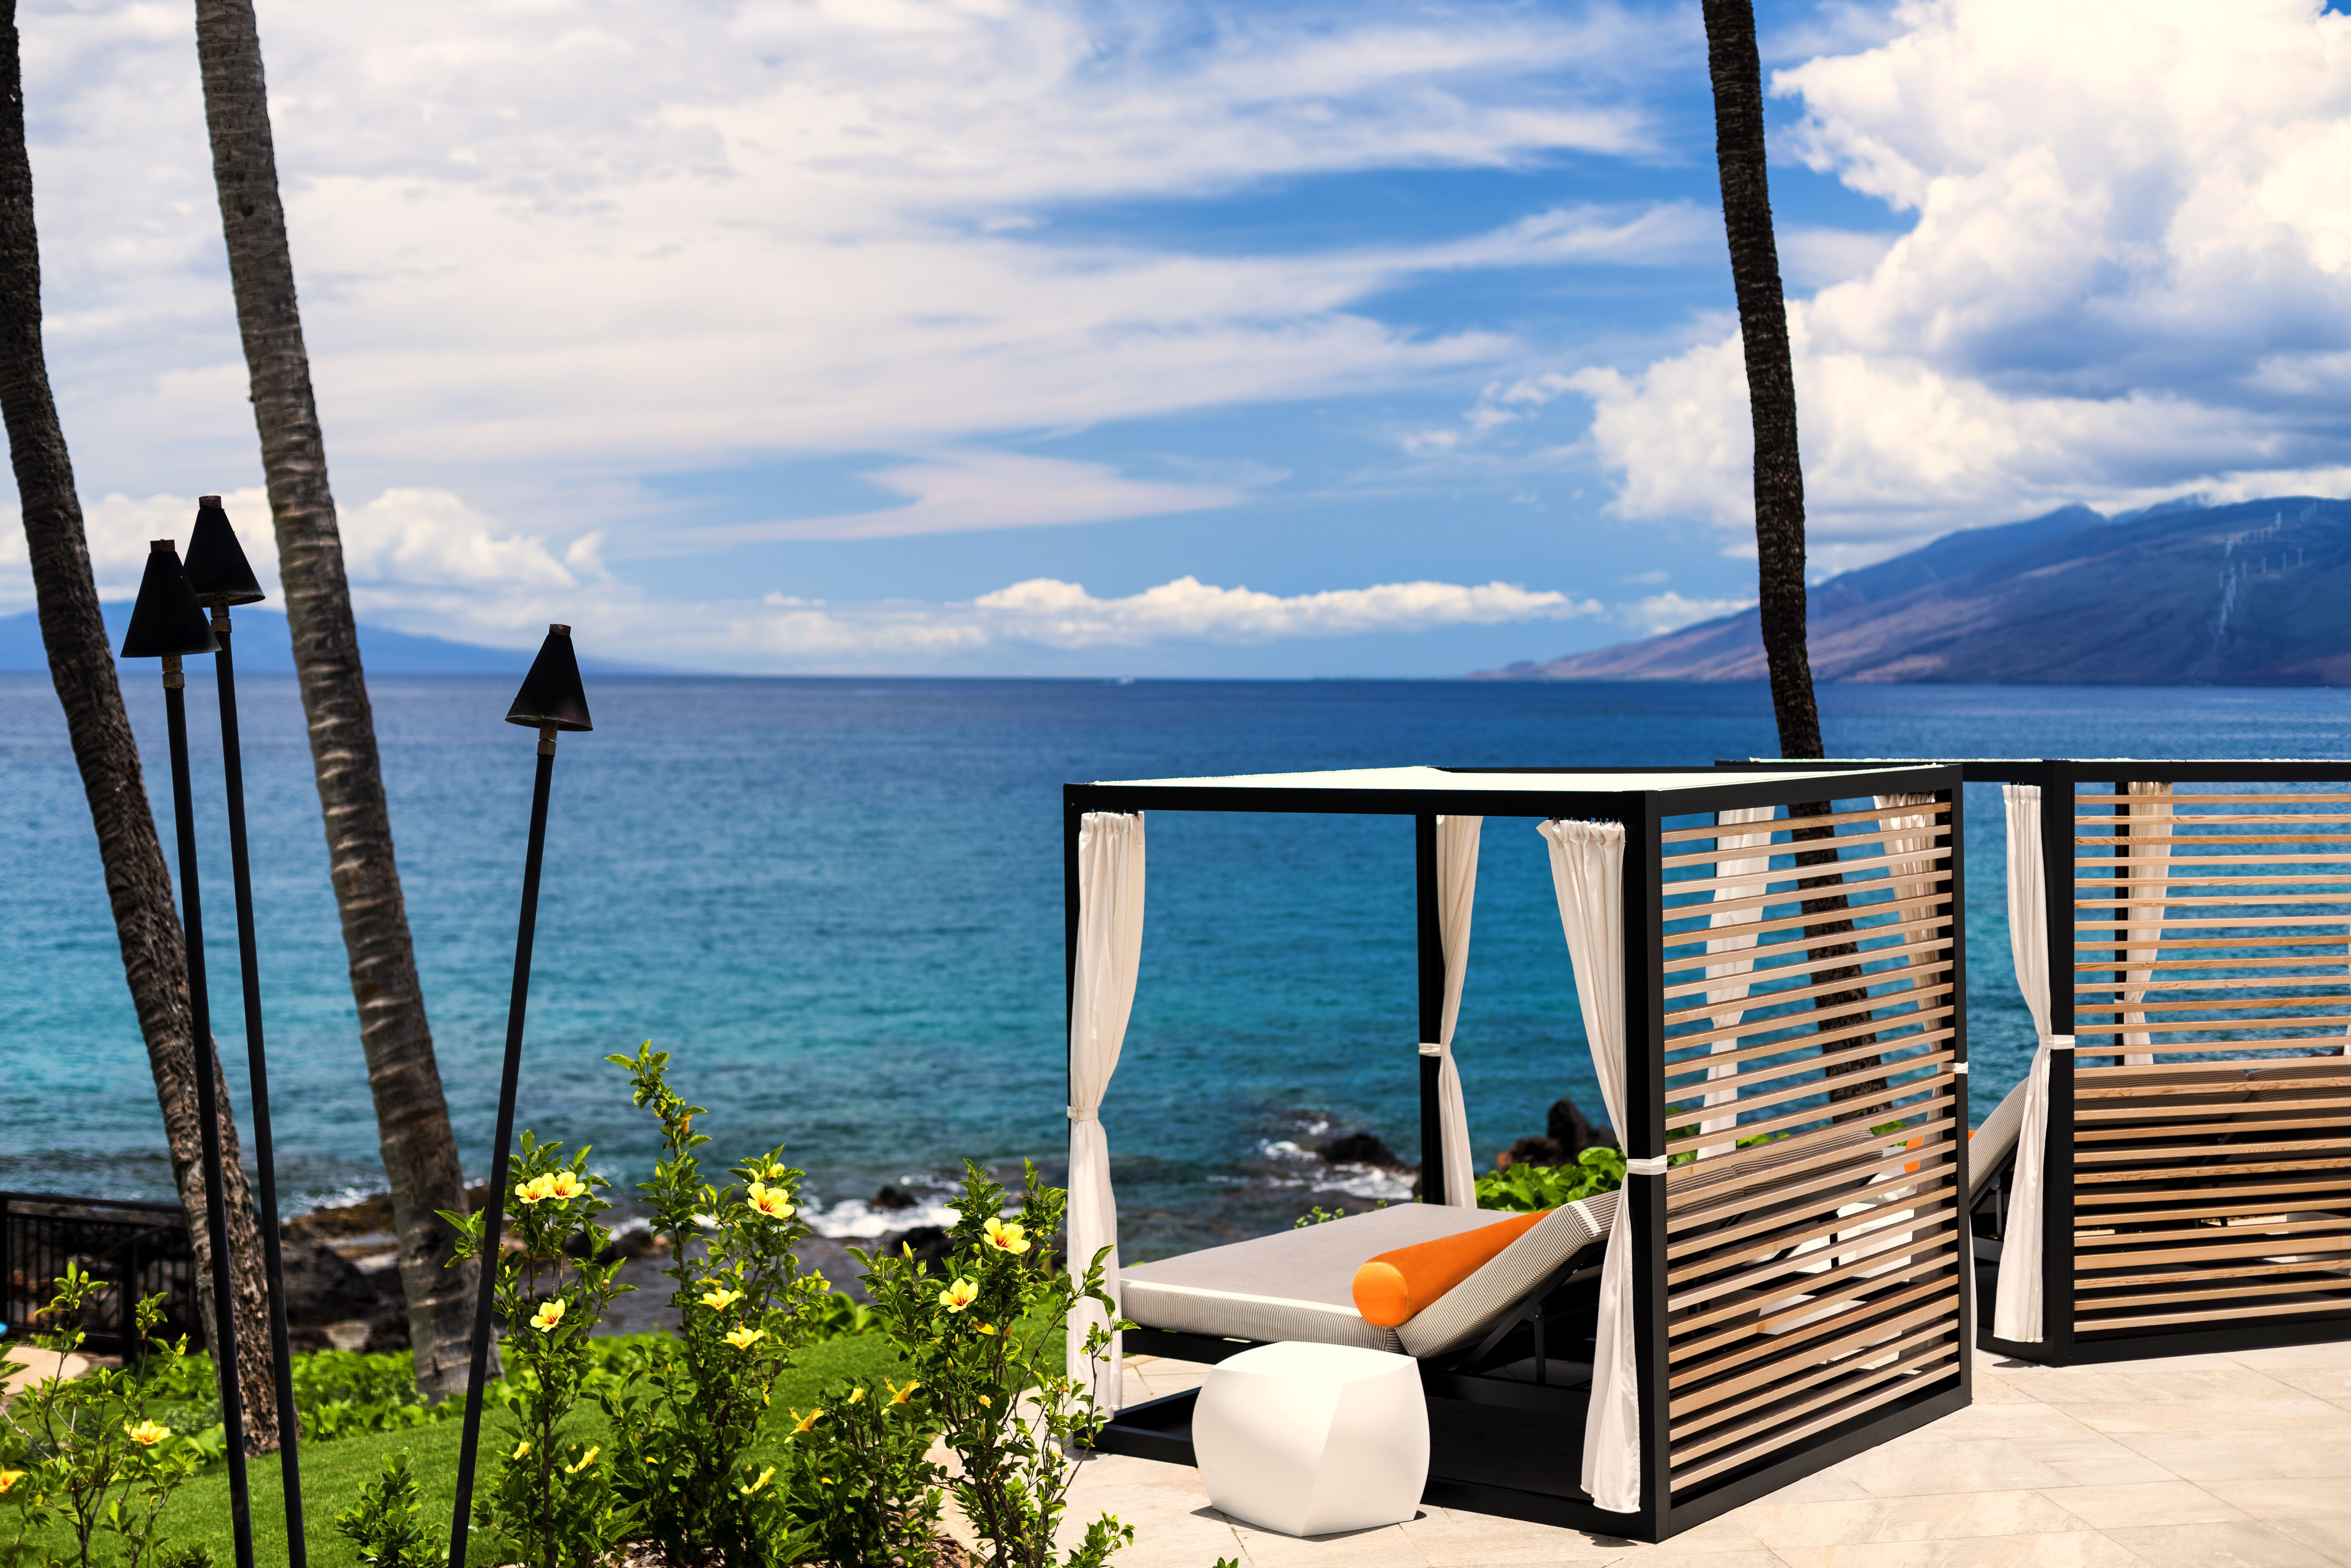 Wailea beach resort marriott luxury for less on maui for Nicest hotels in maui